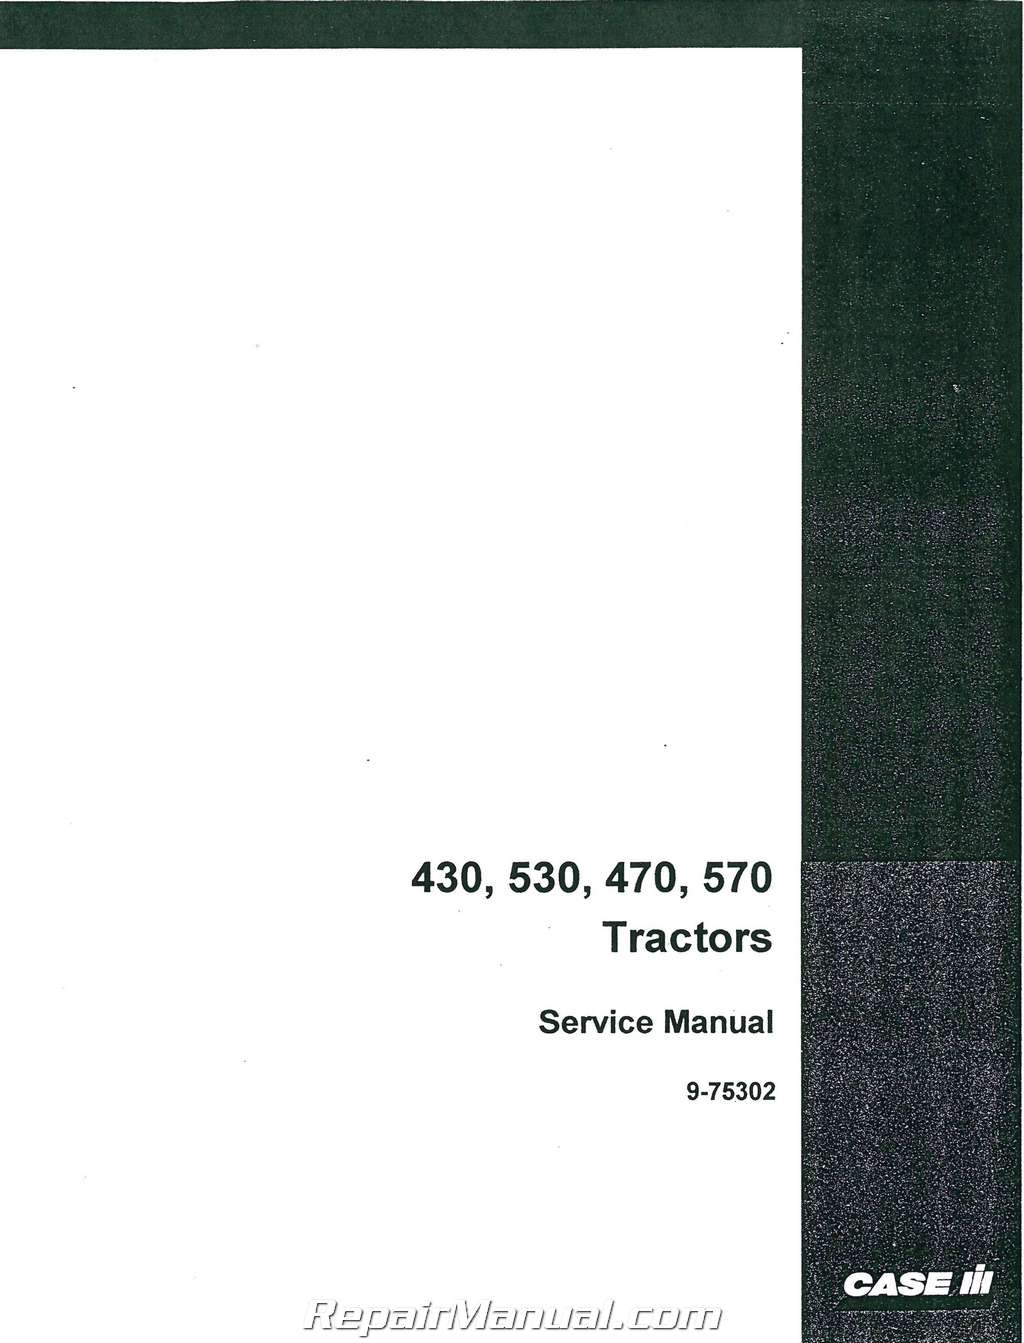 hight resolution of case ih u 95 105 115 service manual farmall pdf scribd online preview it covers 540 630 specific scribd is world s largest social reading publishing